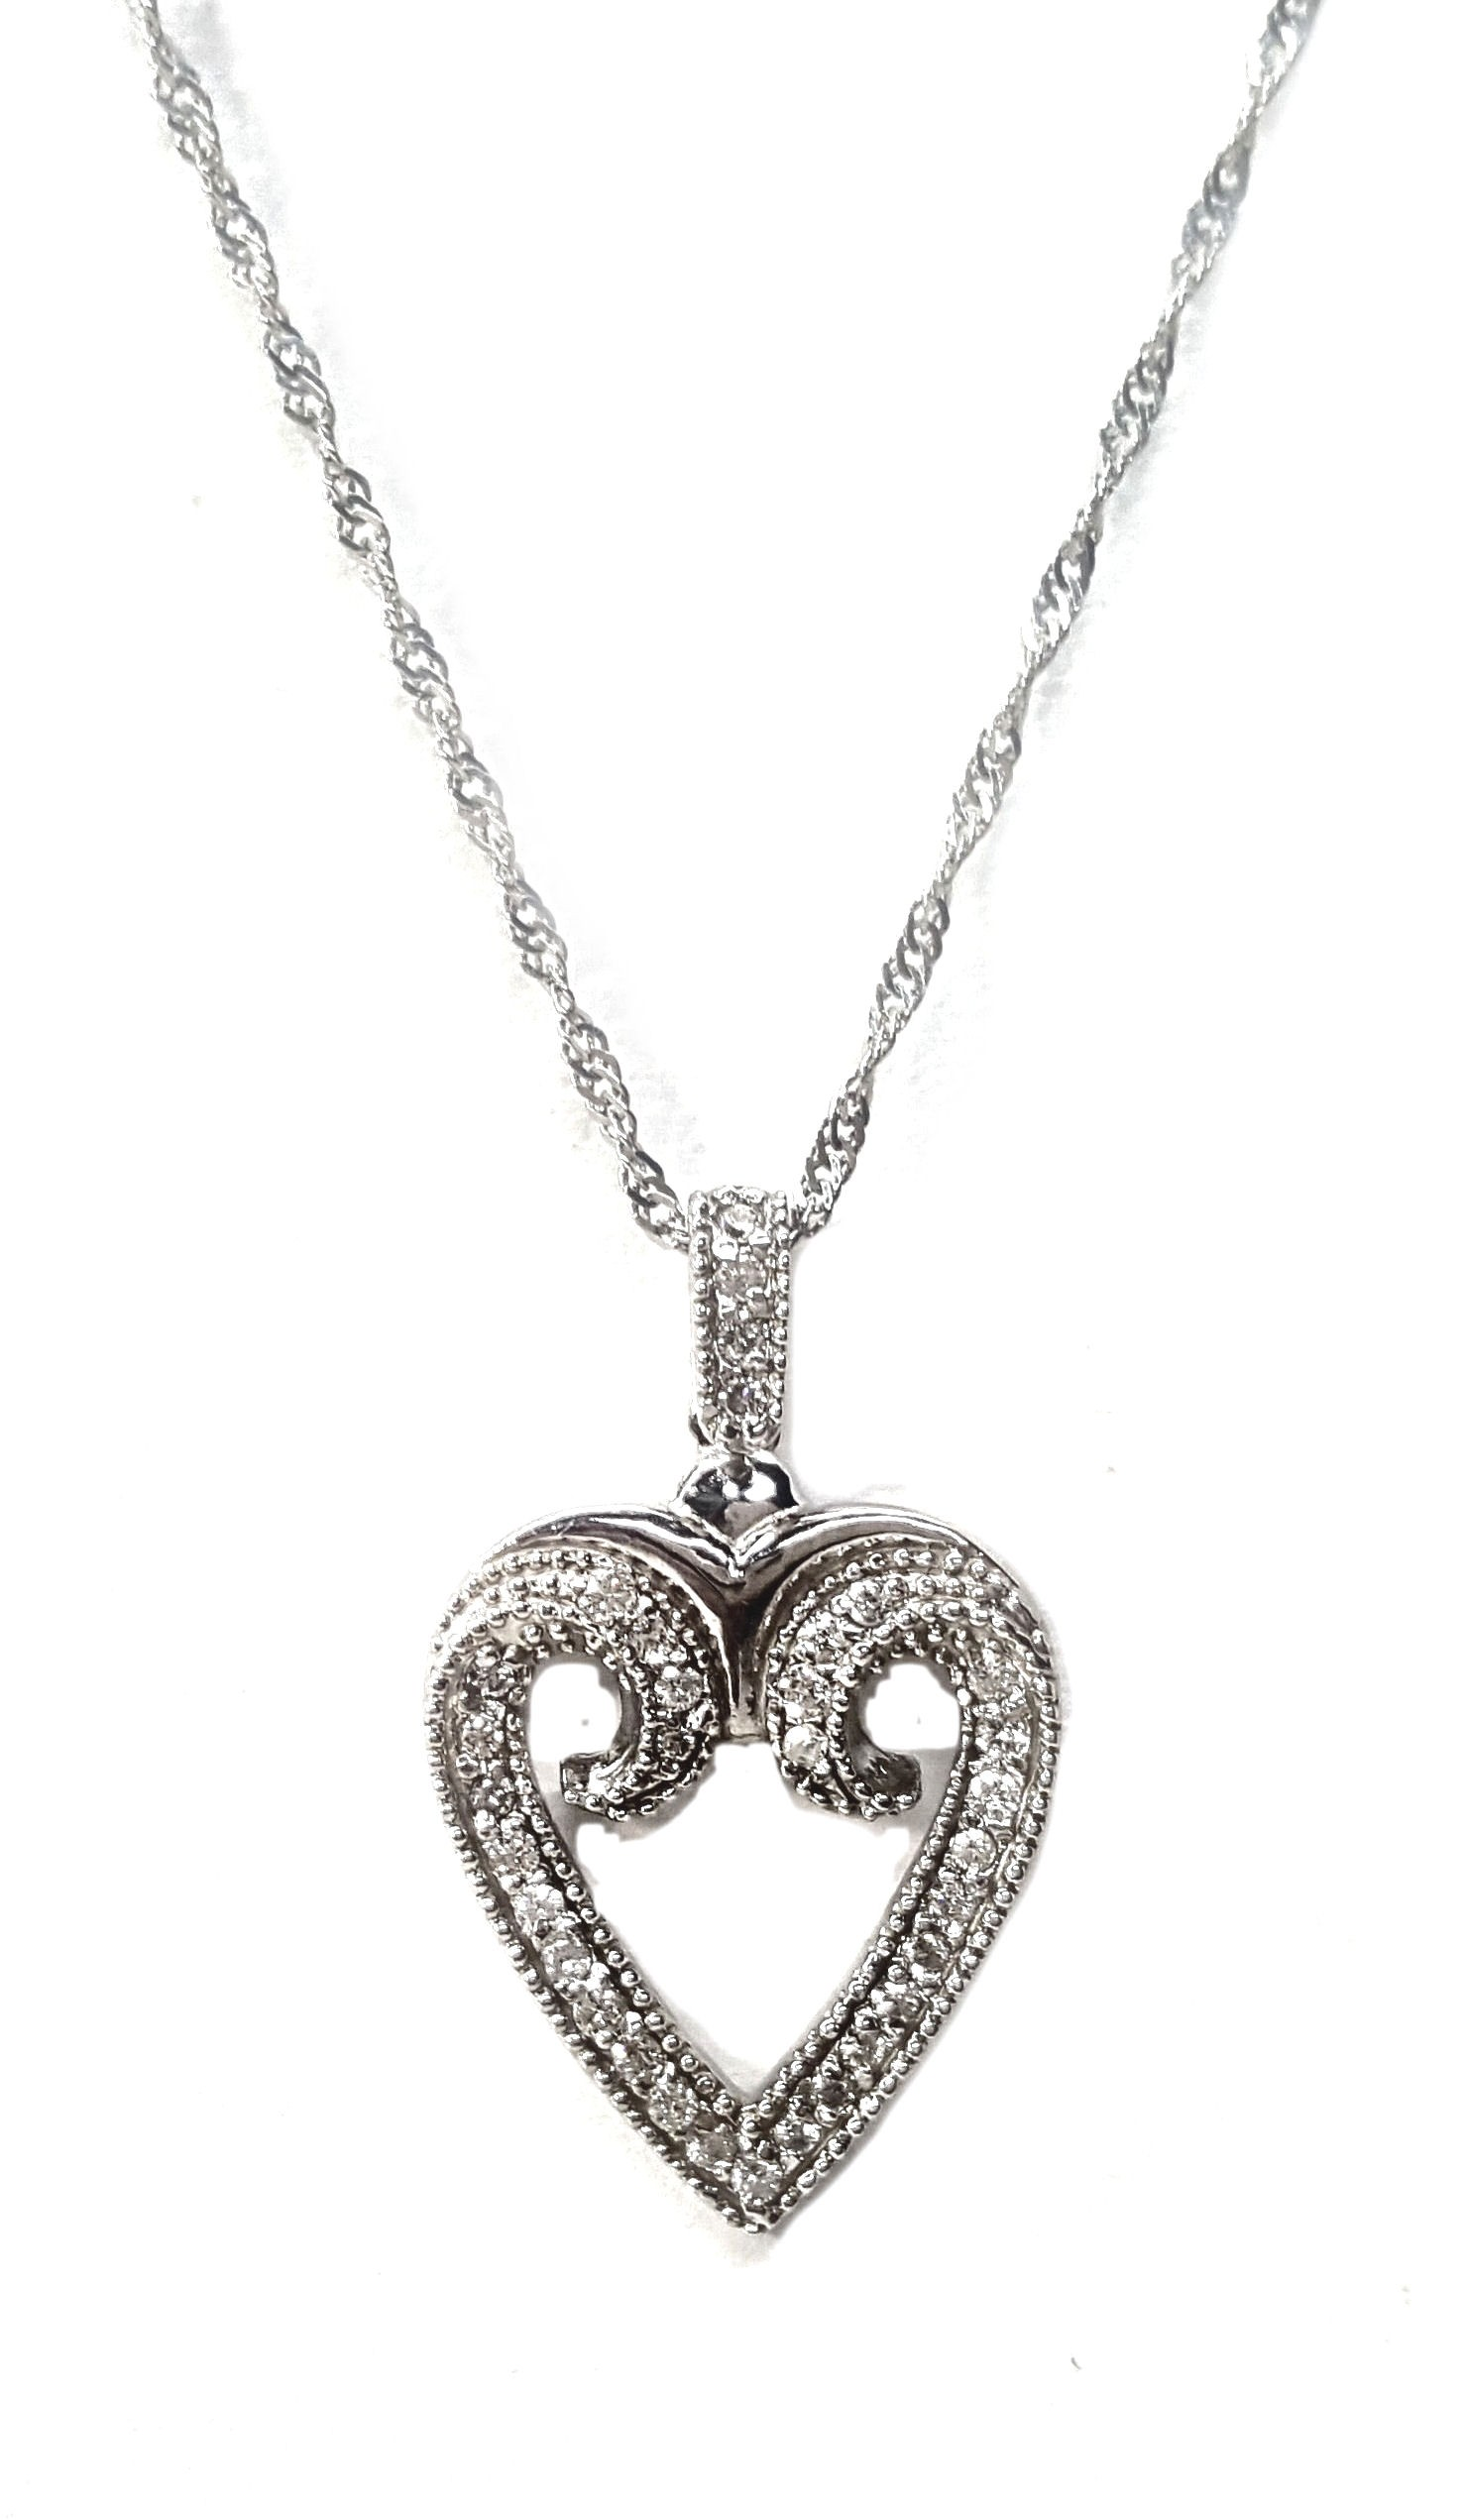 Diamond Open Heart Necklace in 14kt White Gold,33pts. t.w.